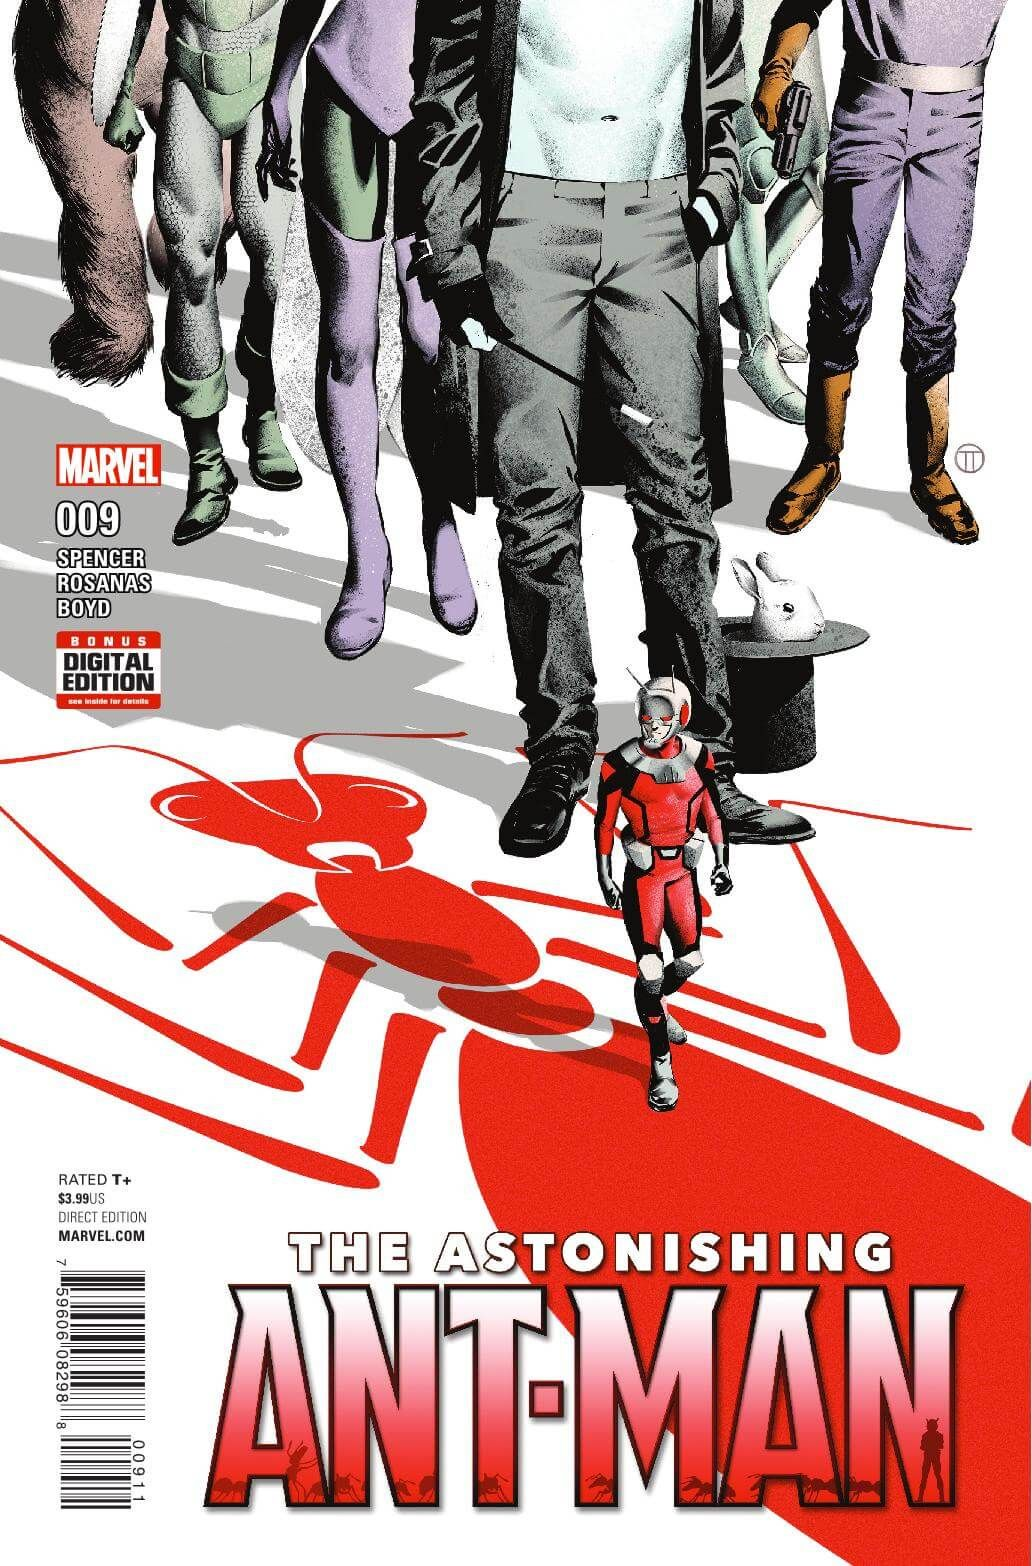 Preview: Astonishing Ant-Man #9, Story: Nick Spencer Art: Ramon Rosanas Covers: Julian Totino Tedesco Publisher: Marvel Publication Date: March 2nd, 2016 Price: $3.99    ...,  #All-Comic #All-ComicPreviews #AstonishingAnt-Man #Comics #JulianTotinoTedesco #Marvel #NickSpencer #previews #RamonRosanas